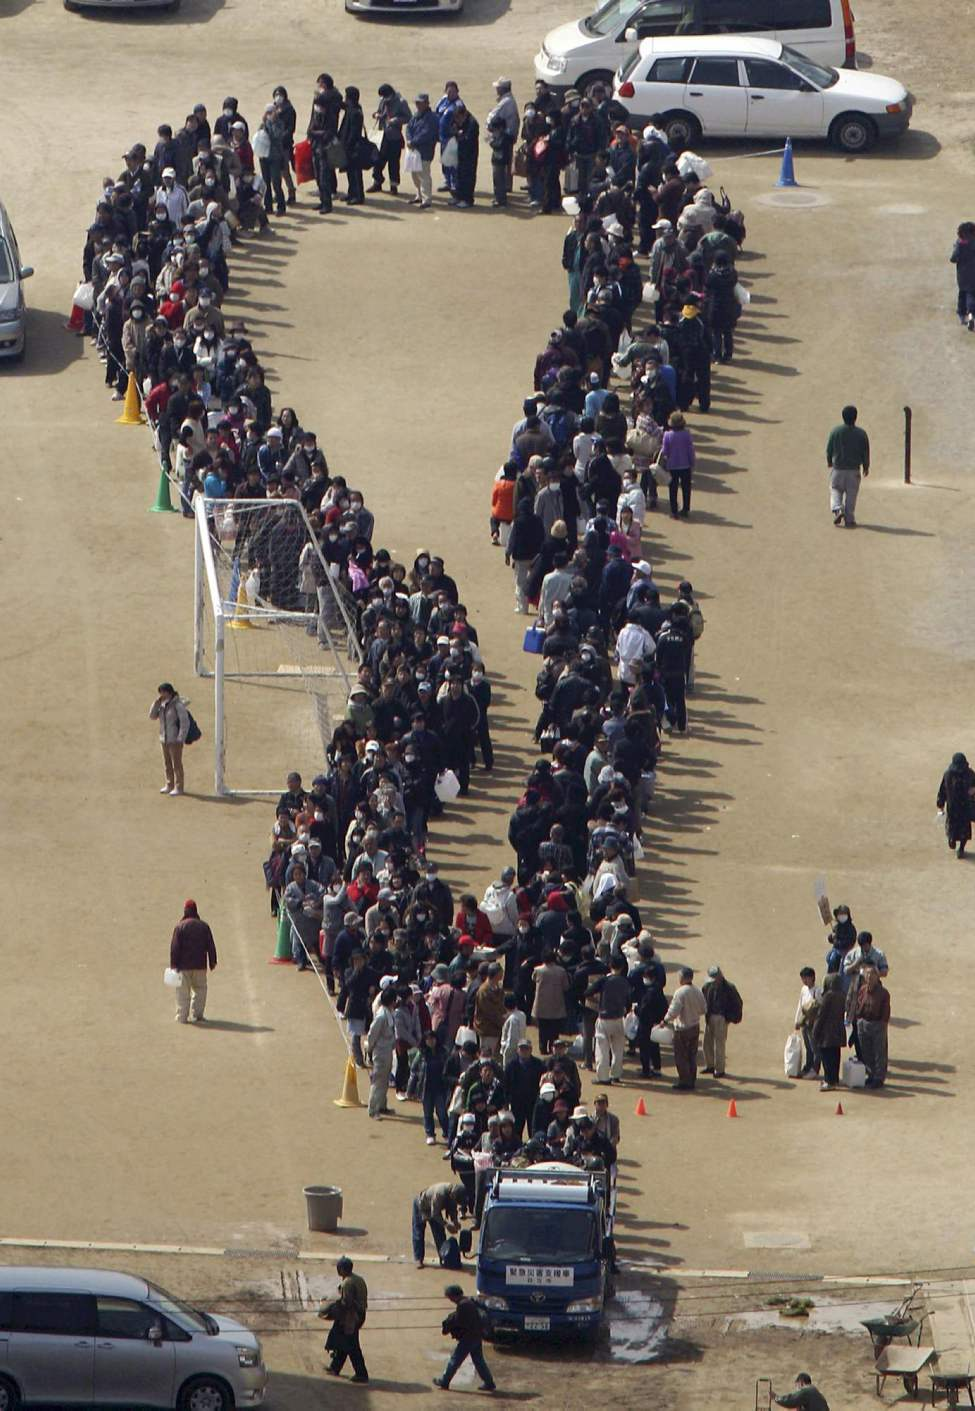 People line up to get kerosene in Hitachi in Ibaraki Prefecture (state) Monday, March 14, 2011, three days after a powerful earthquake-triggered tsunami hit the country's northeast coast. (AP Photo/The Yomiuri Shimbun, Kenichi Unaki)